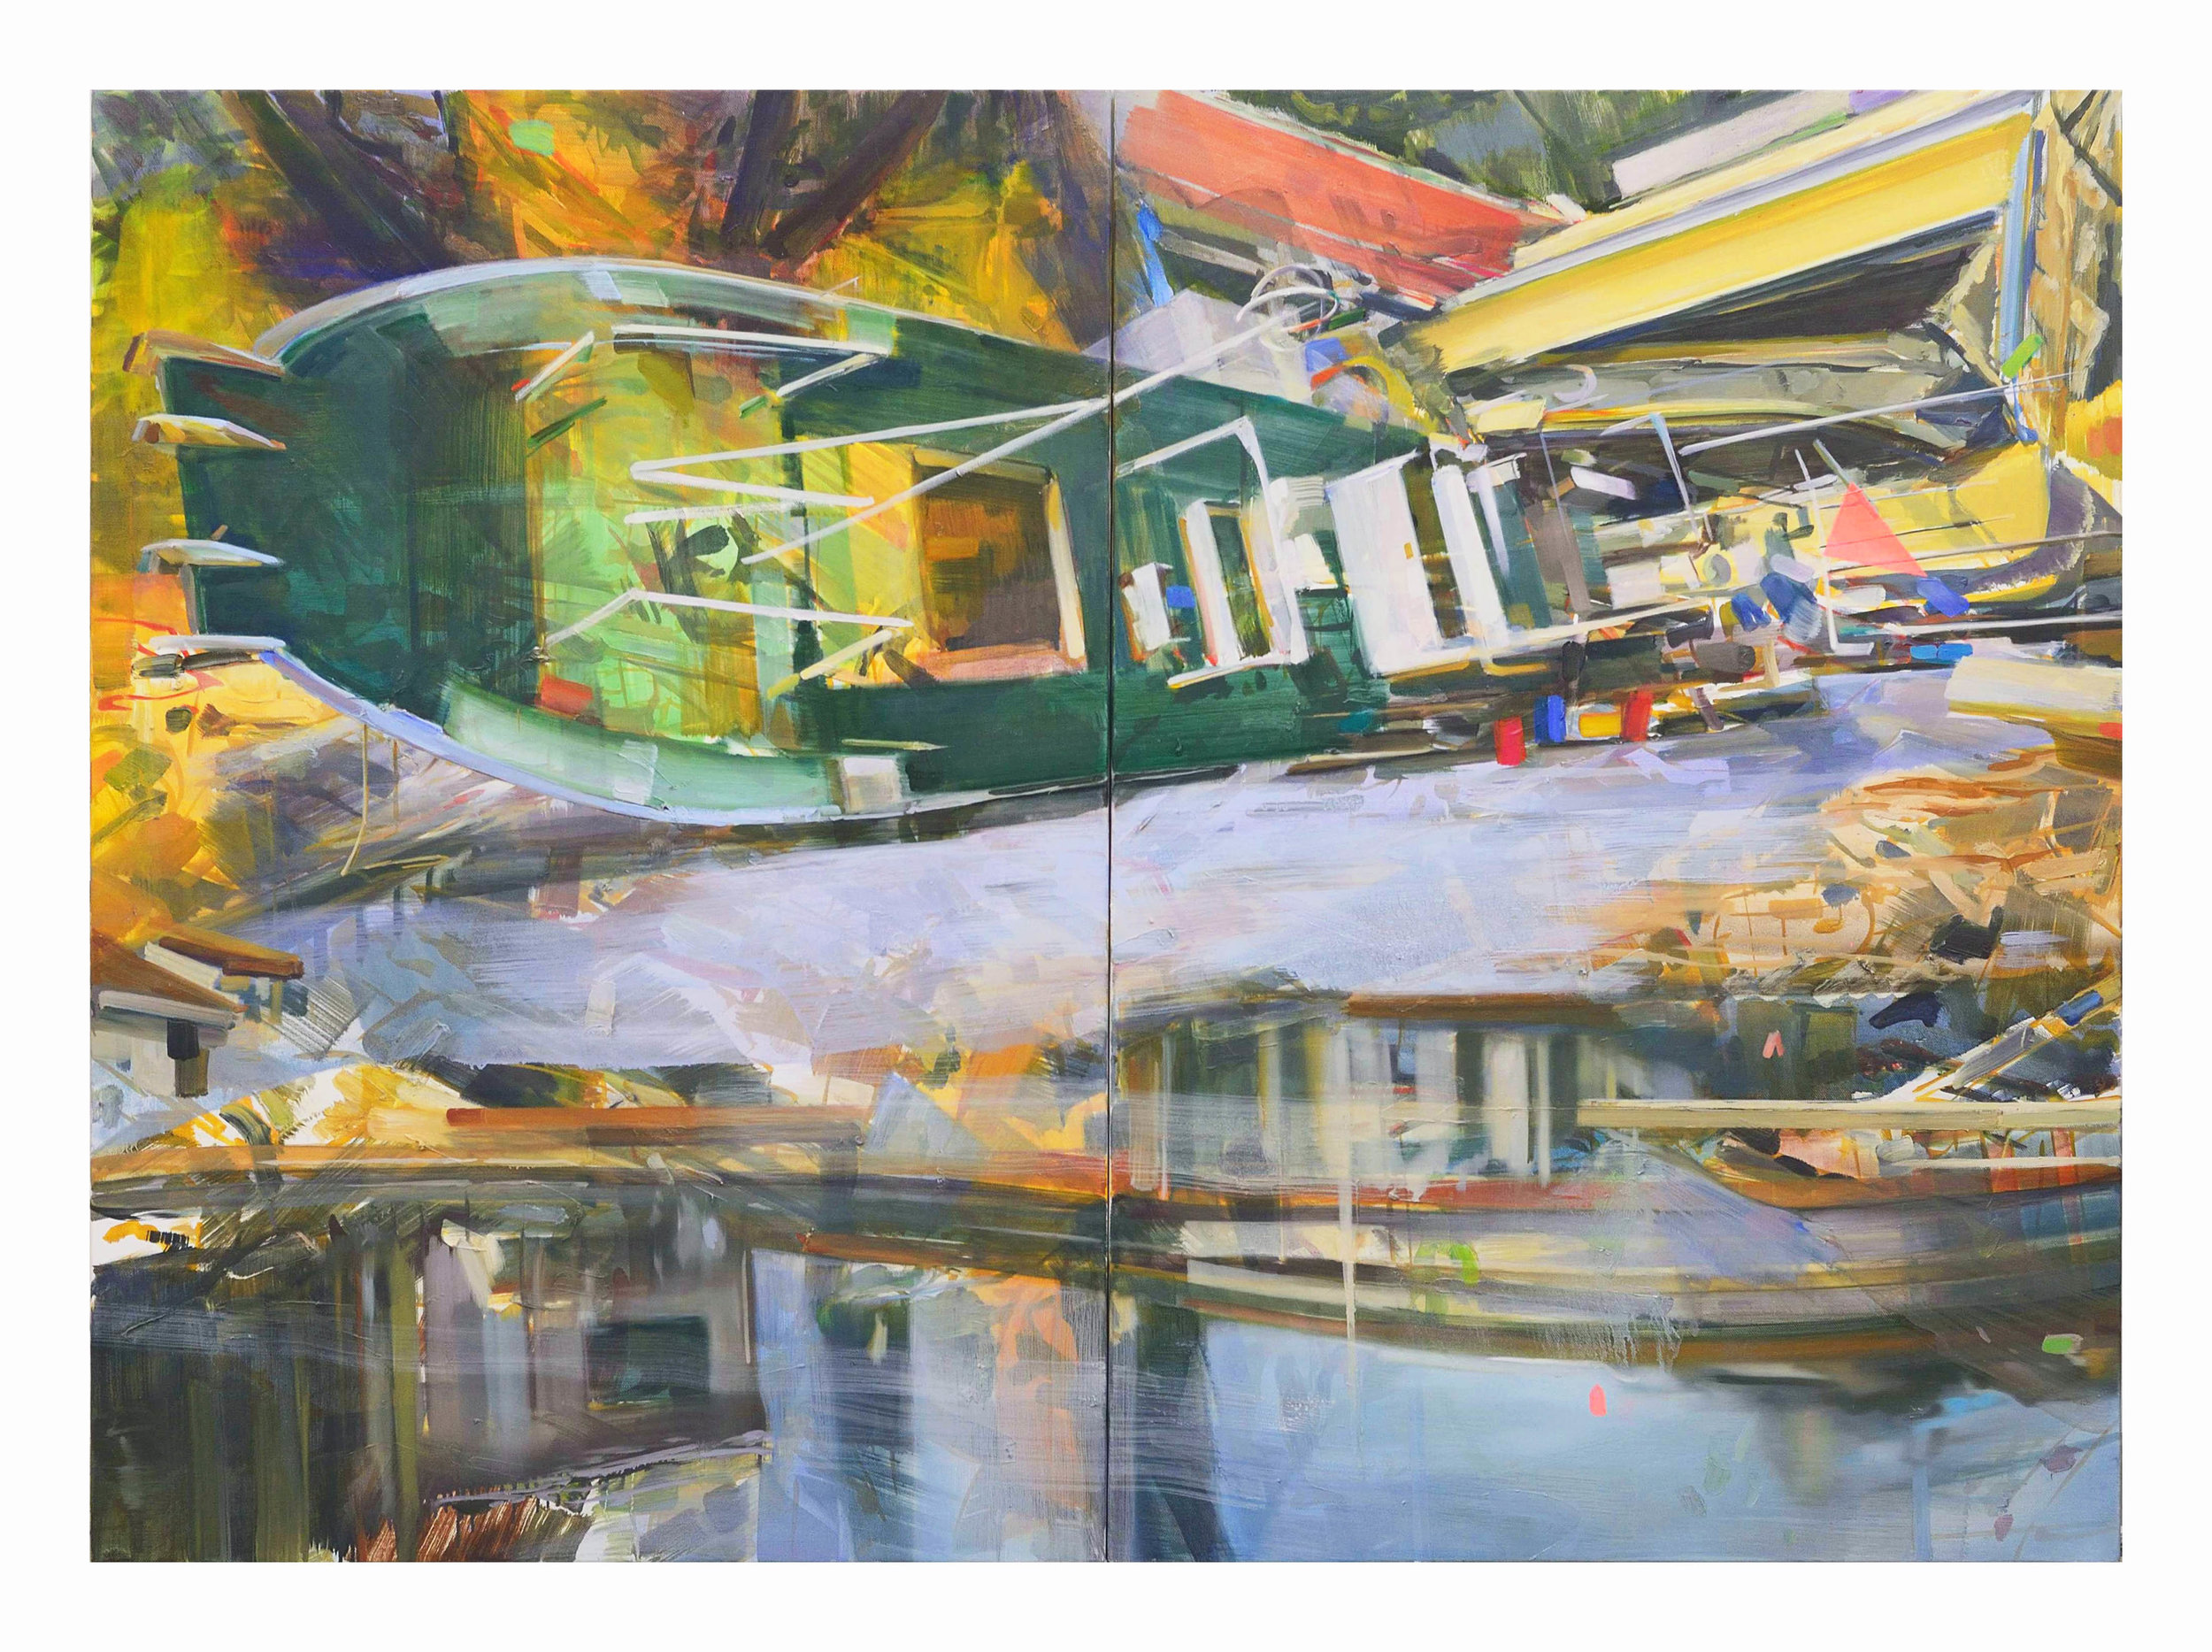 Fitzcaraldo , 2011, oil on canvas, 130 x 178cm (diptych). Private collection, Switzerland